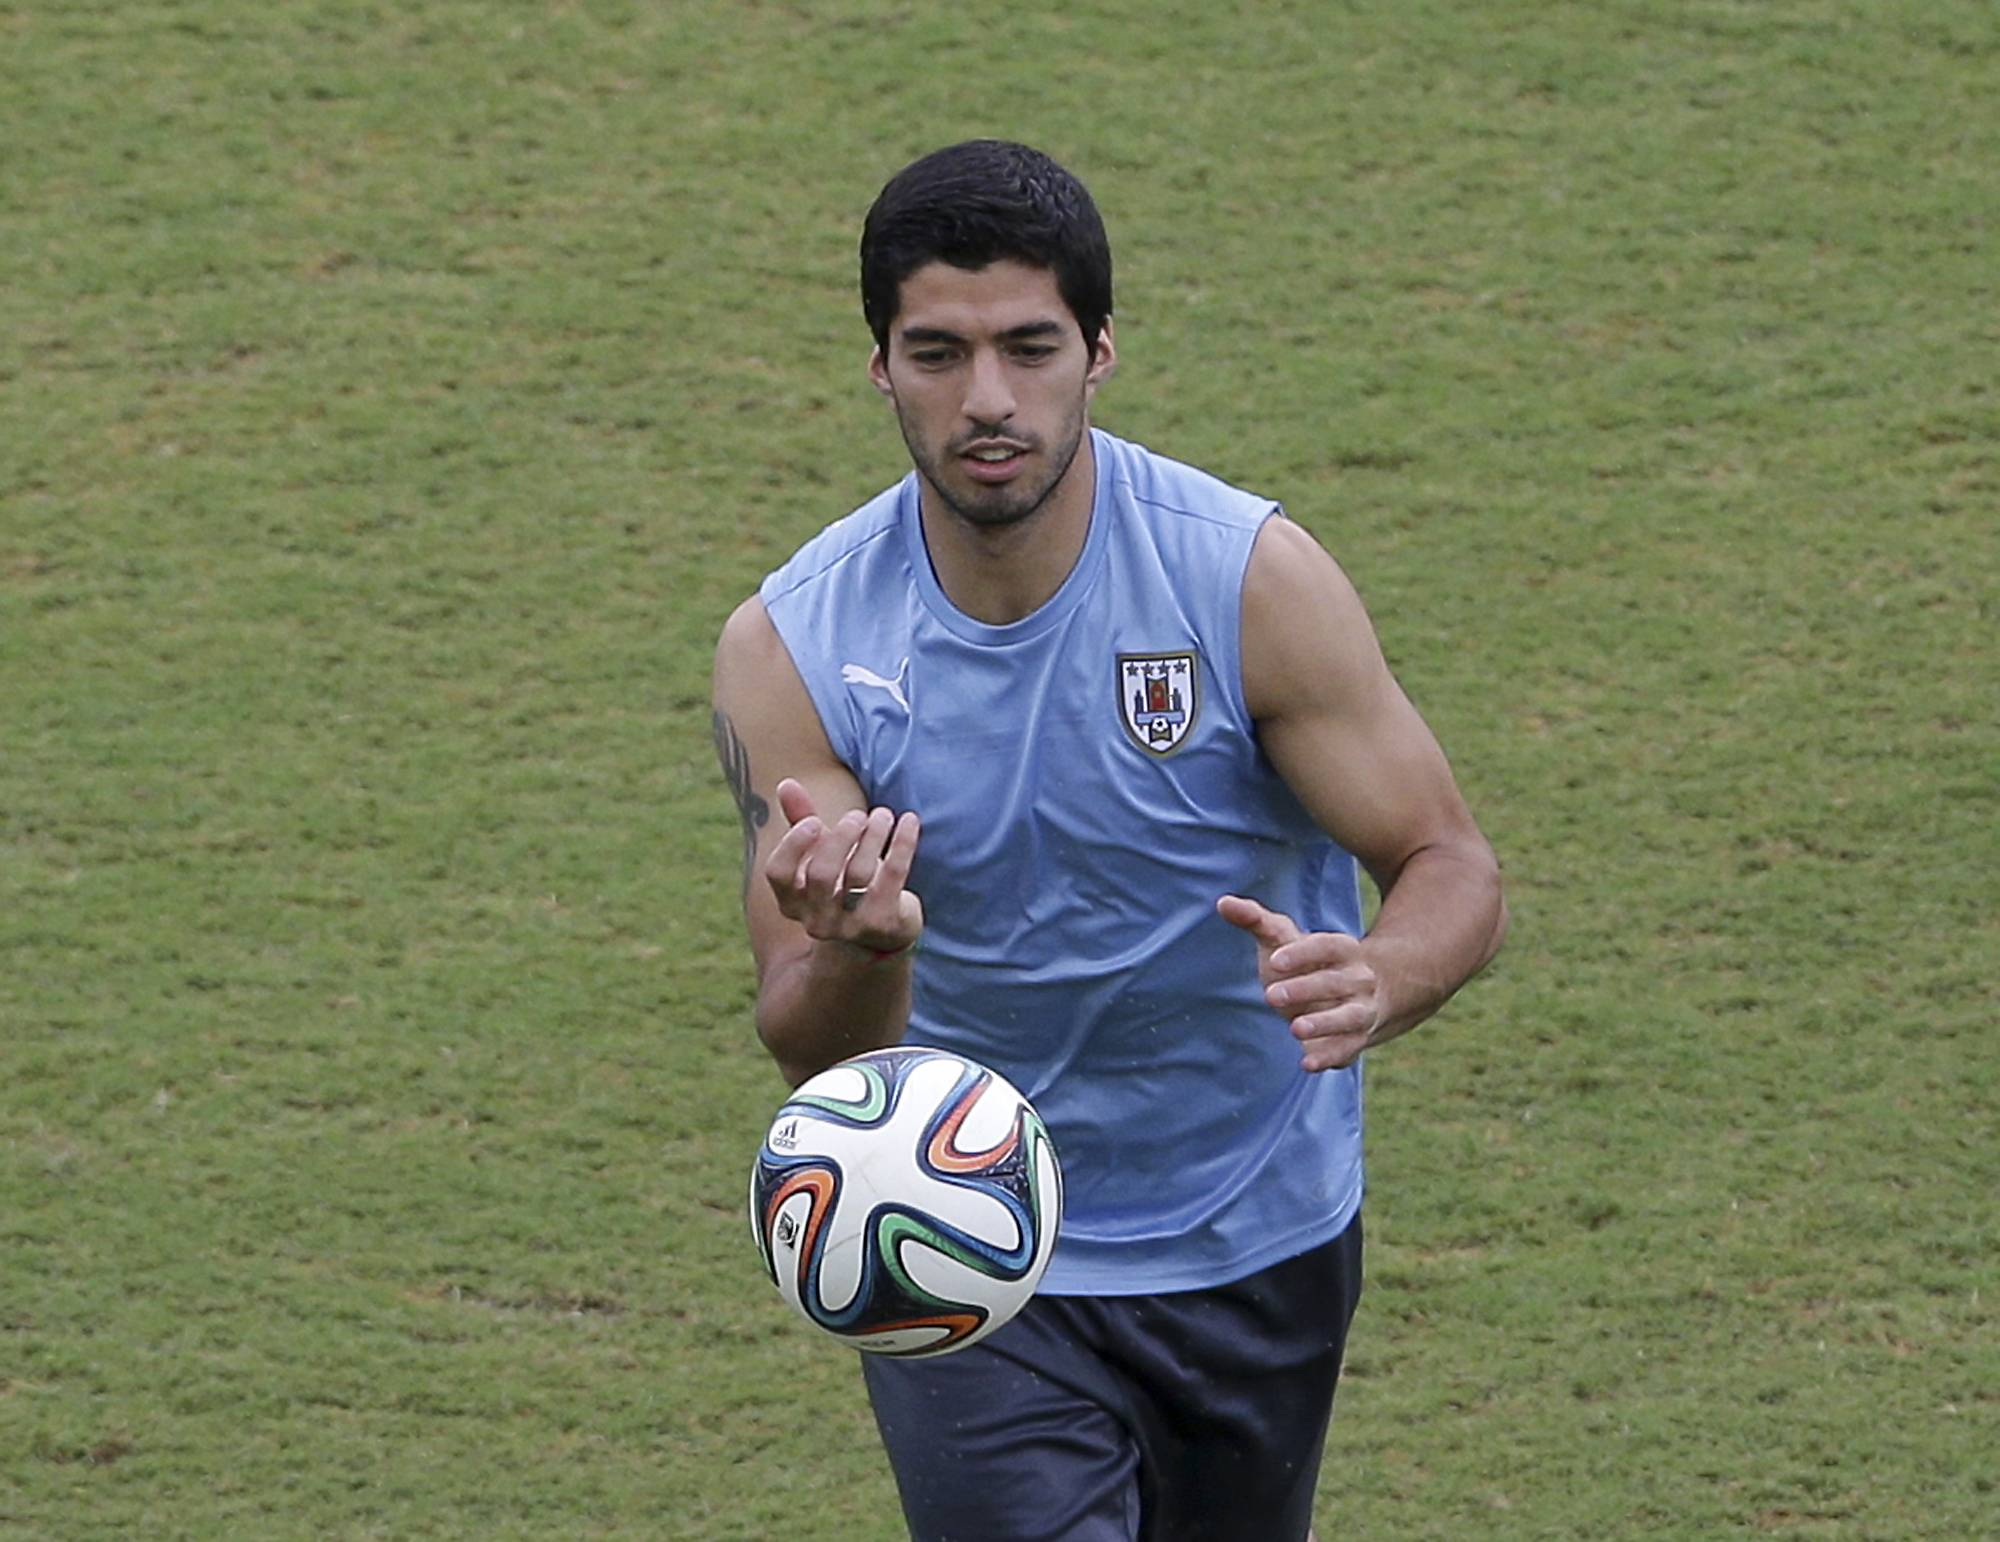 Uruguay's Luis Suarez runs on the pitch during a training session Monday. The highlight of Tuesday's matches is Italy's game against Uruguay, a contest between two former world champions that will see the winner go through to the second round.